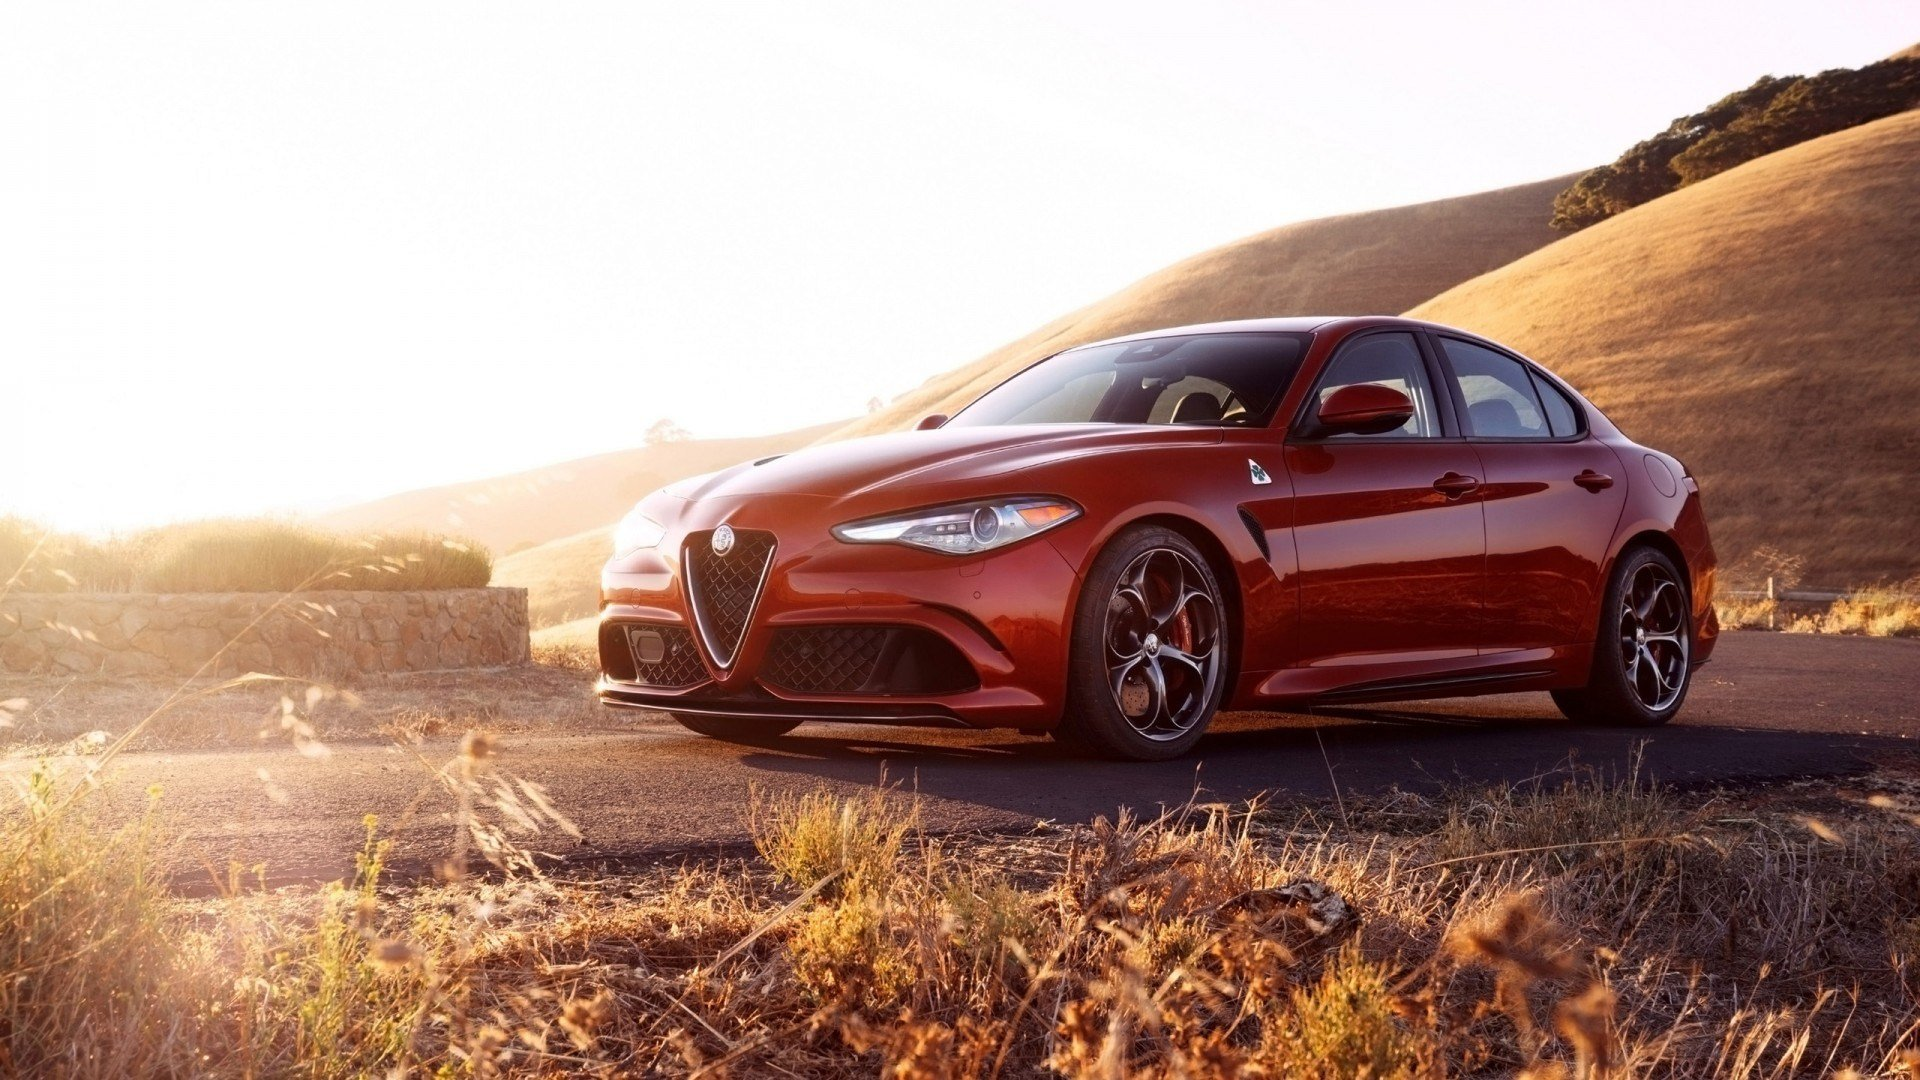 Latest 2017 Alfa Romeo Giulia Quadrifoglio 4 Wallpaper Hd Car Free Download